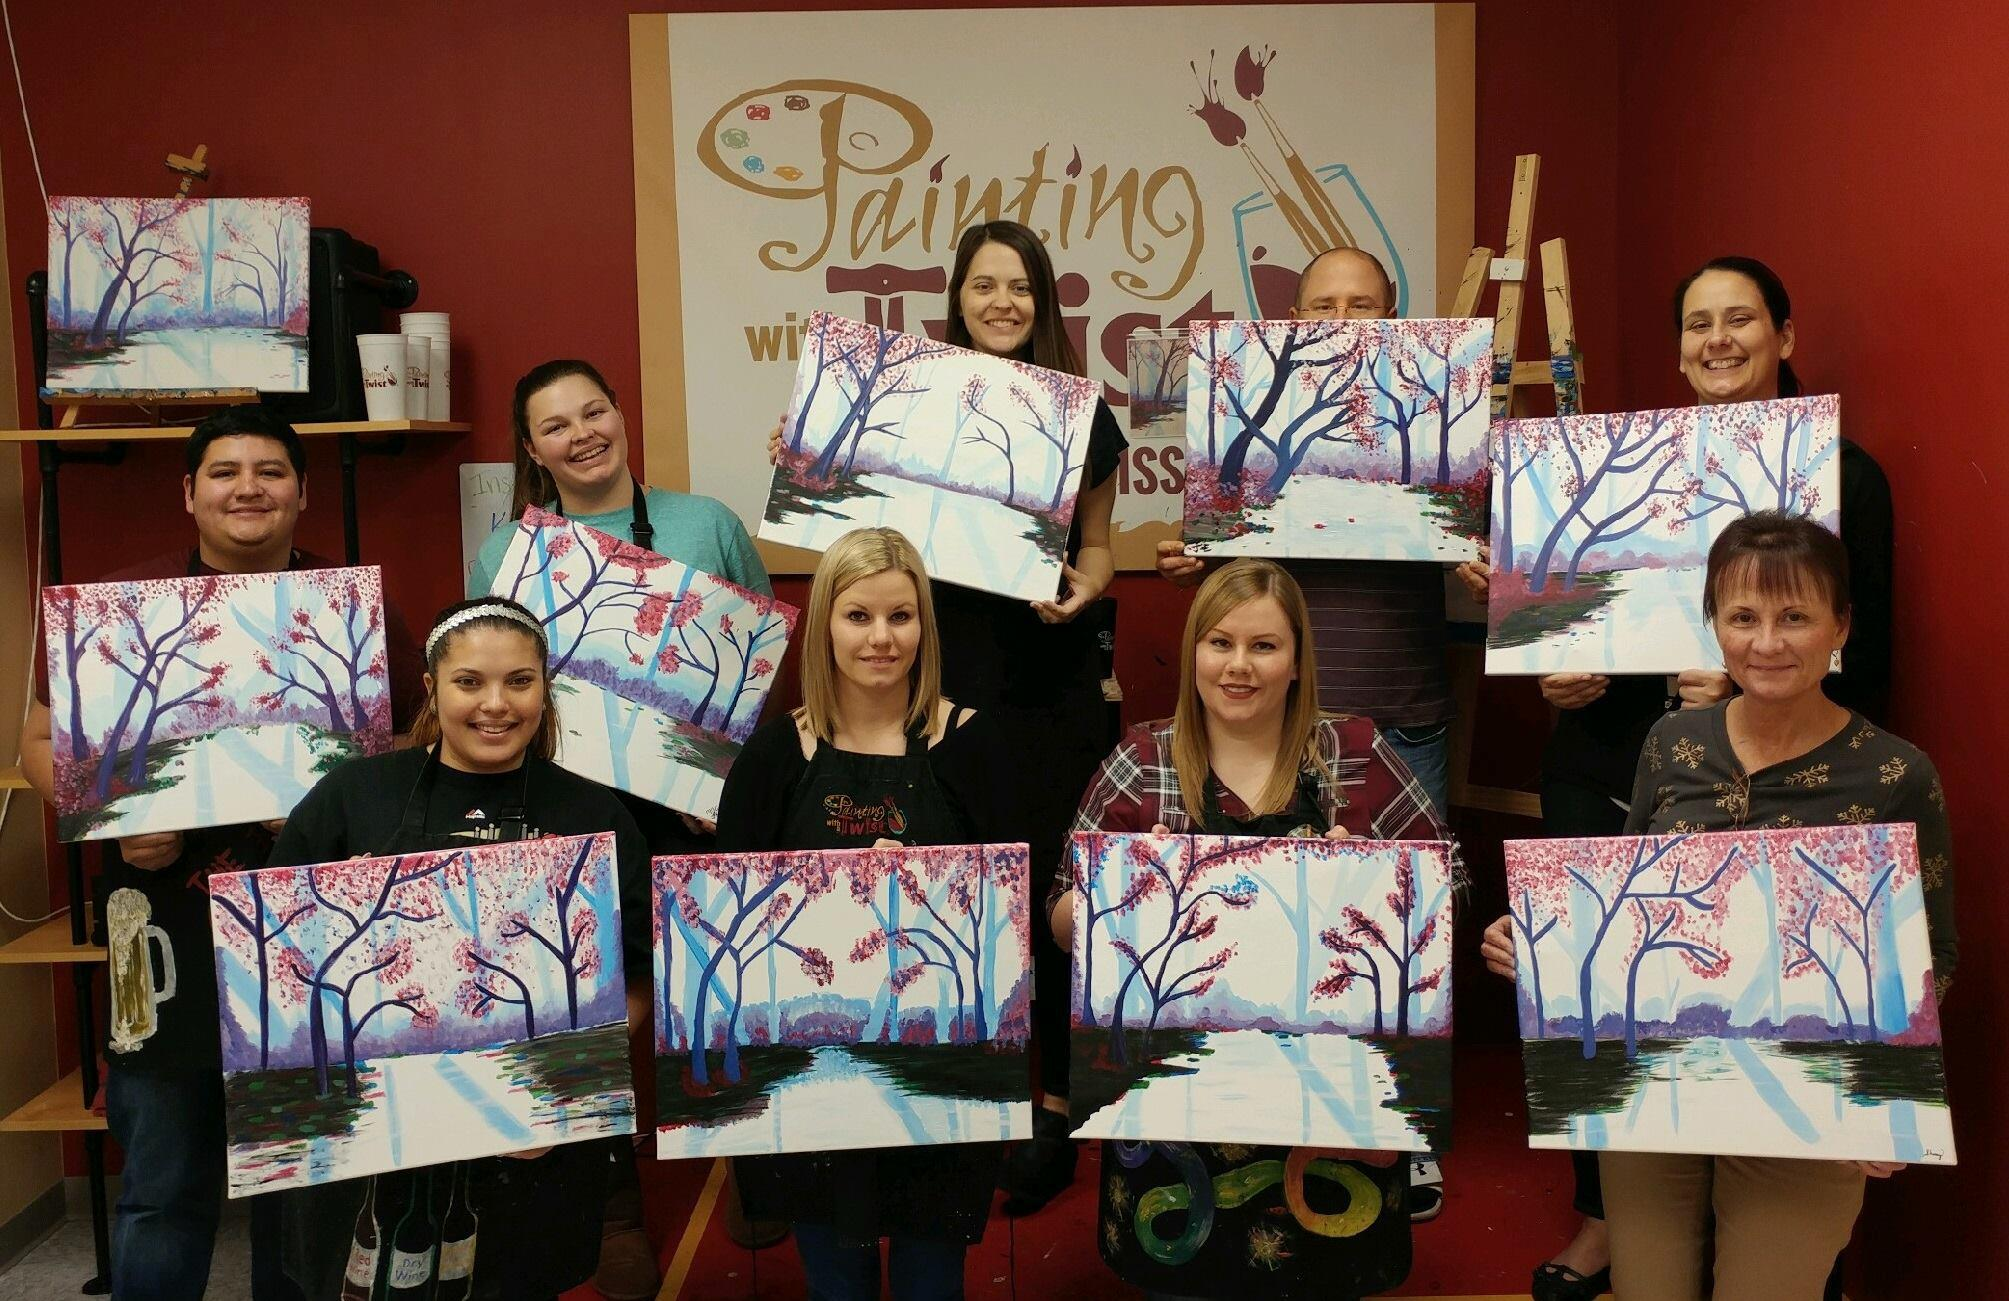 painting with a twist in saint peters mo 63376